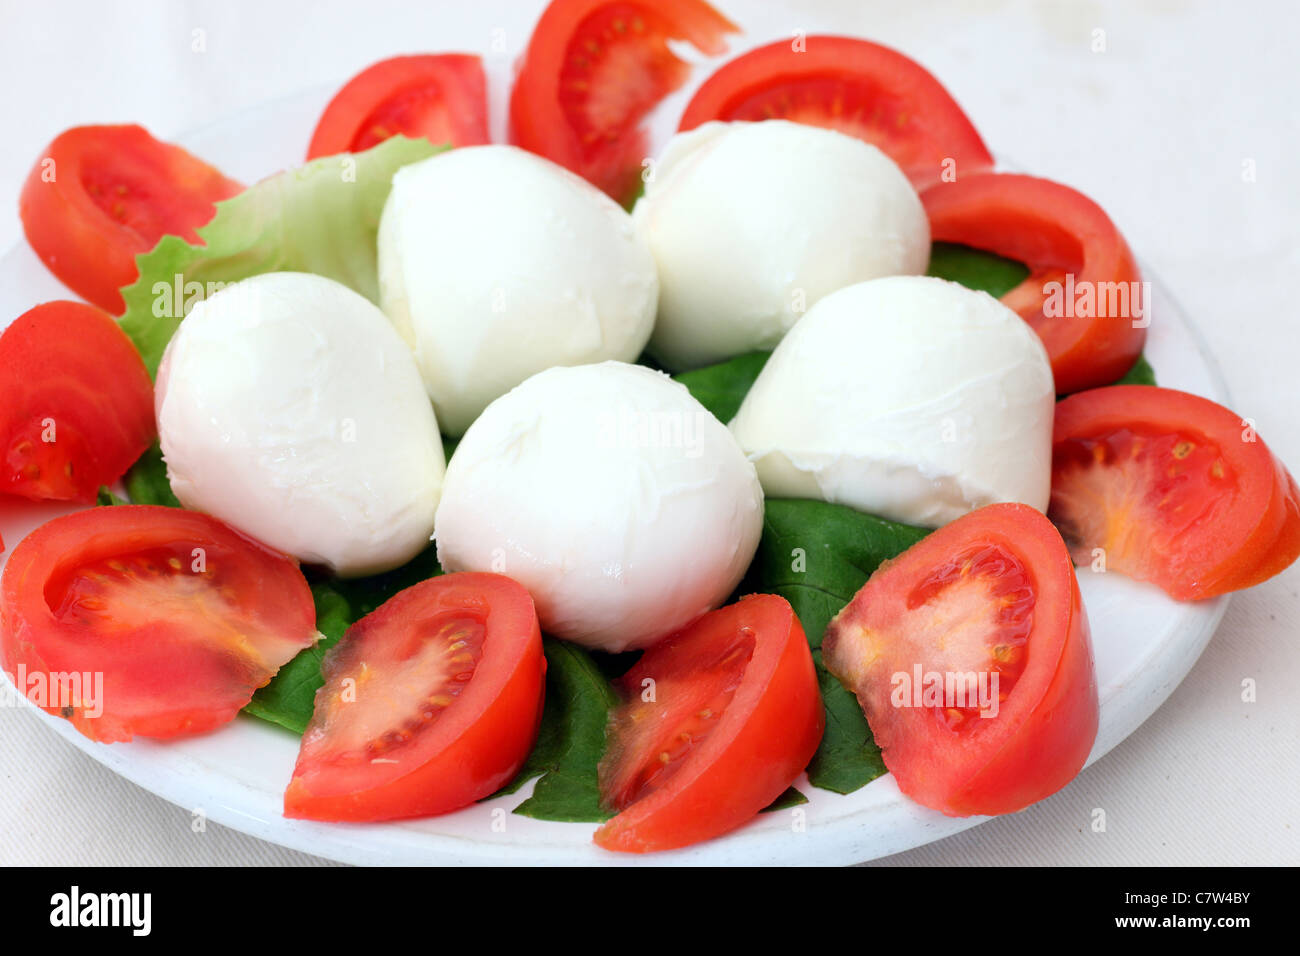 Salade de tomates et mozzarella de bufflonne Photo Stock